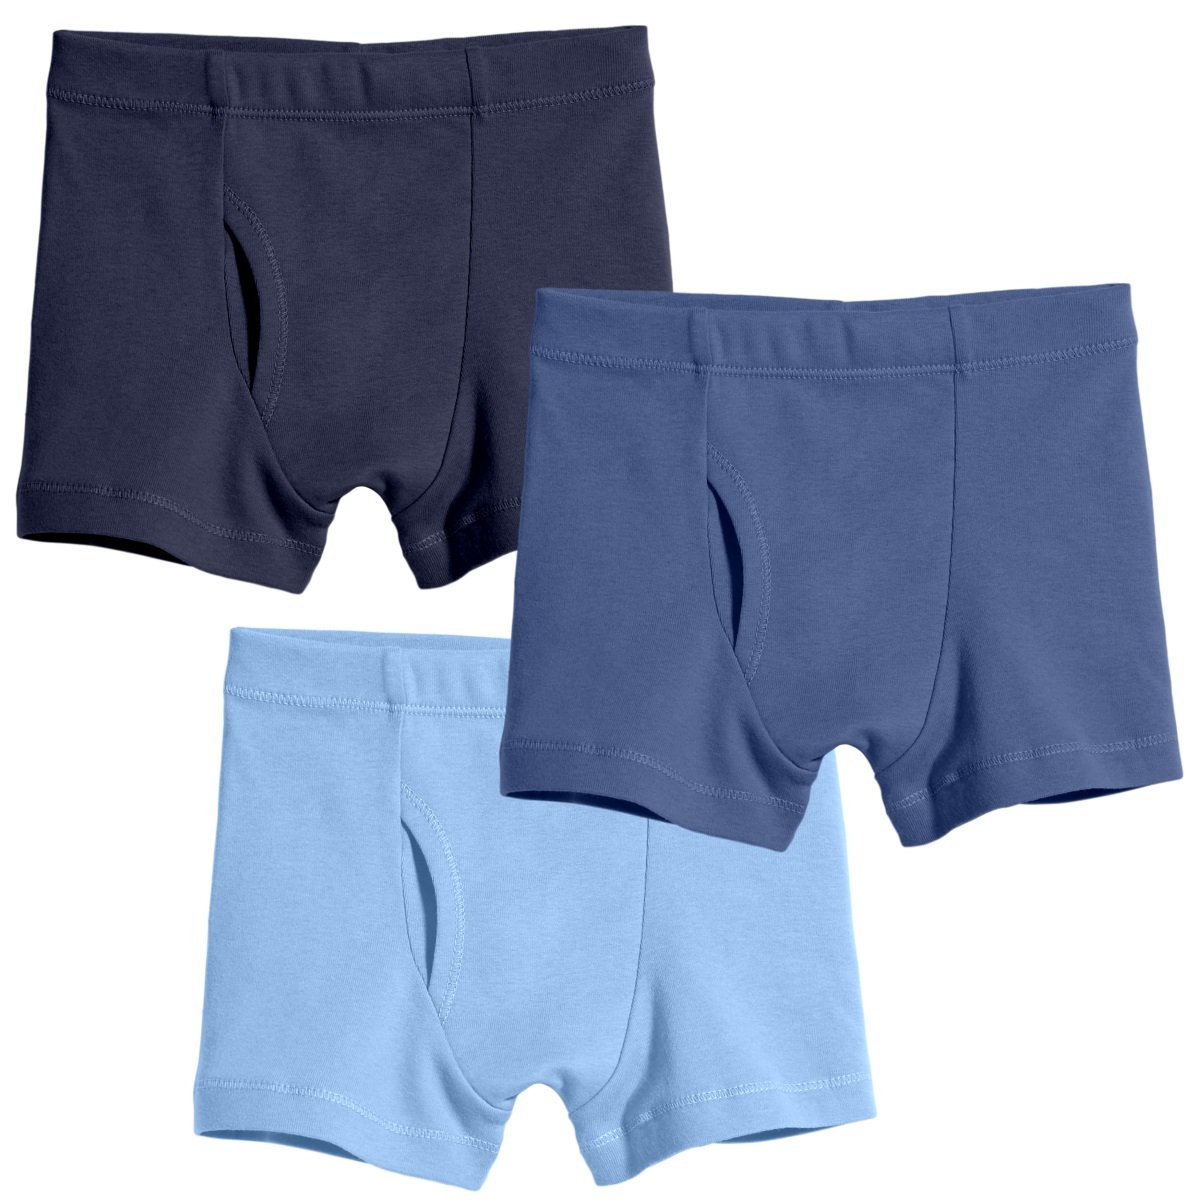 City Threads Big Boys Organic Cotton Boxer Brief for Sensitive Skin and SPD Sensory Friendly Clothing, 3Pack Blues, 14